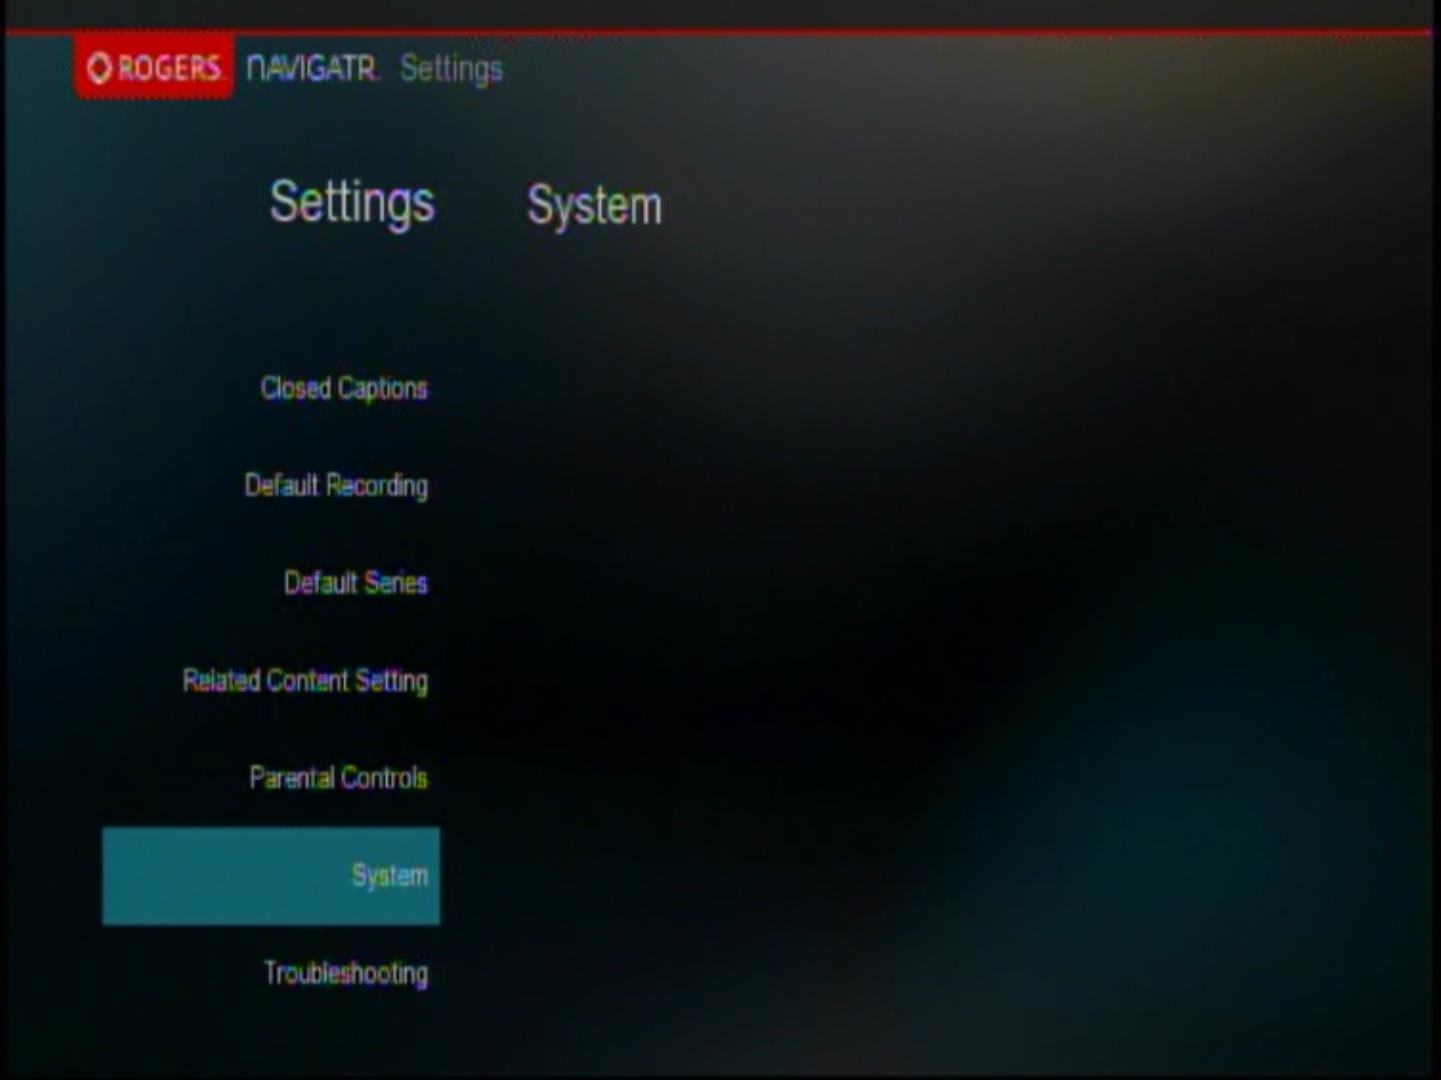 Manage the channel change banner in the Navigatr guide - Rogers